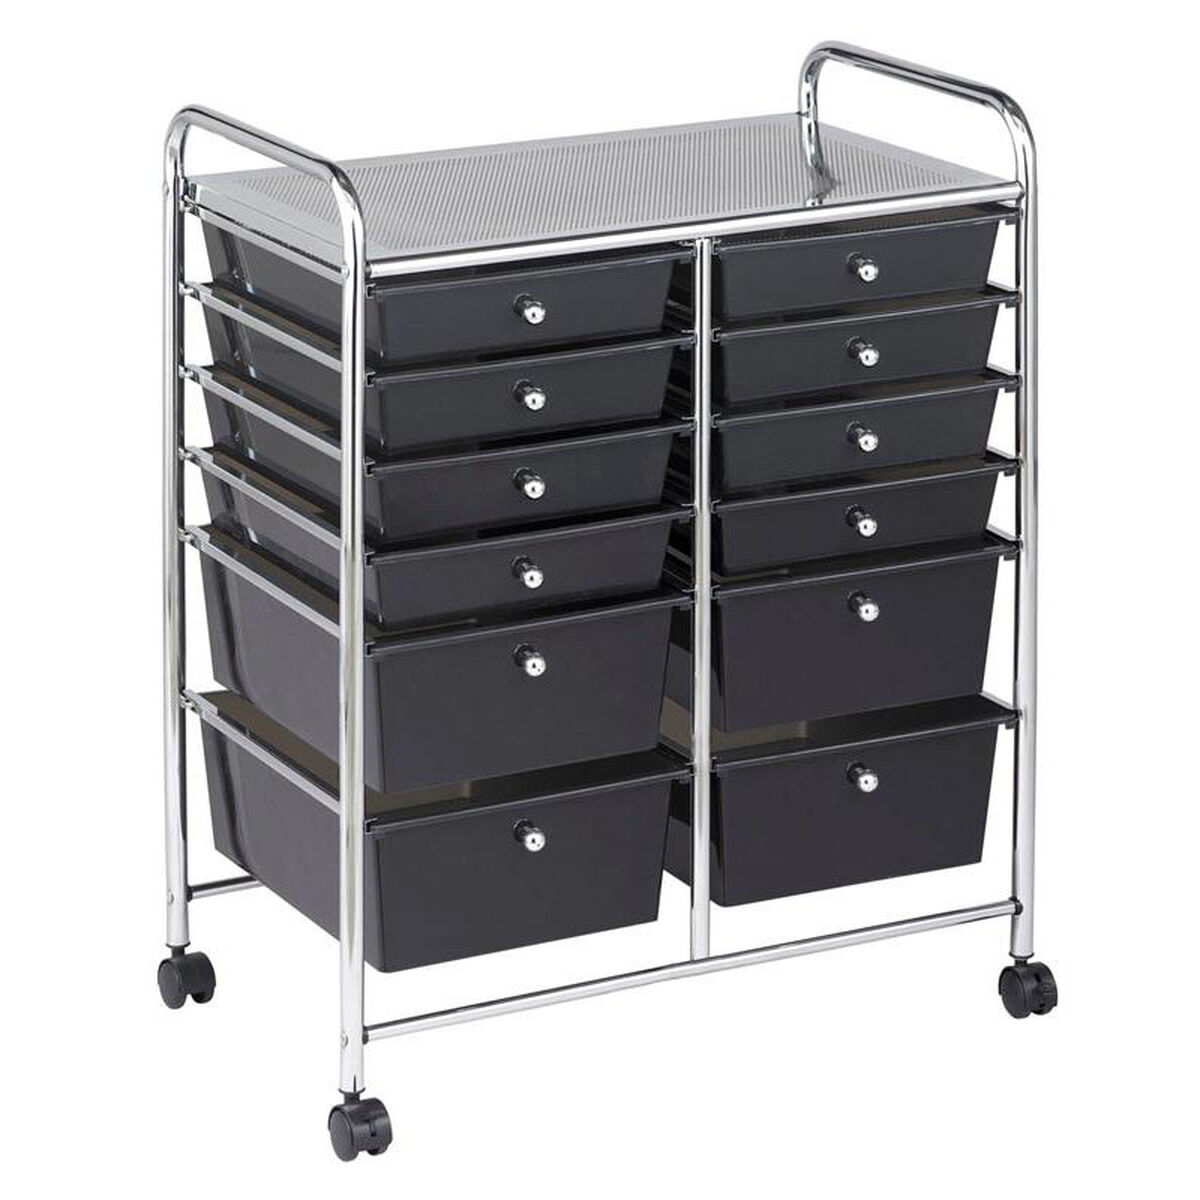 organizer organizers kits our s metal starter store drawers container kit drawer the